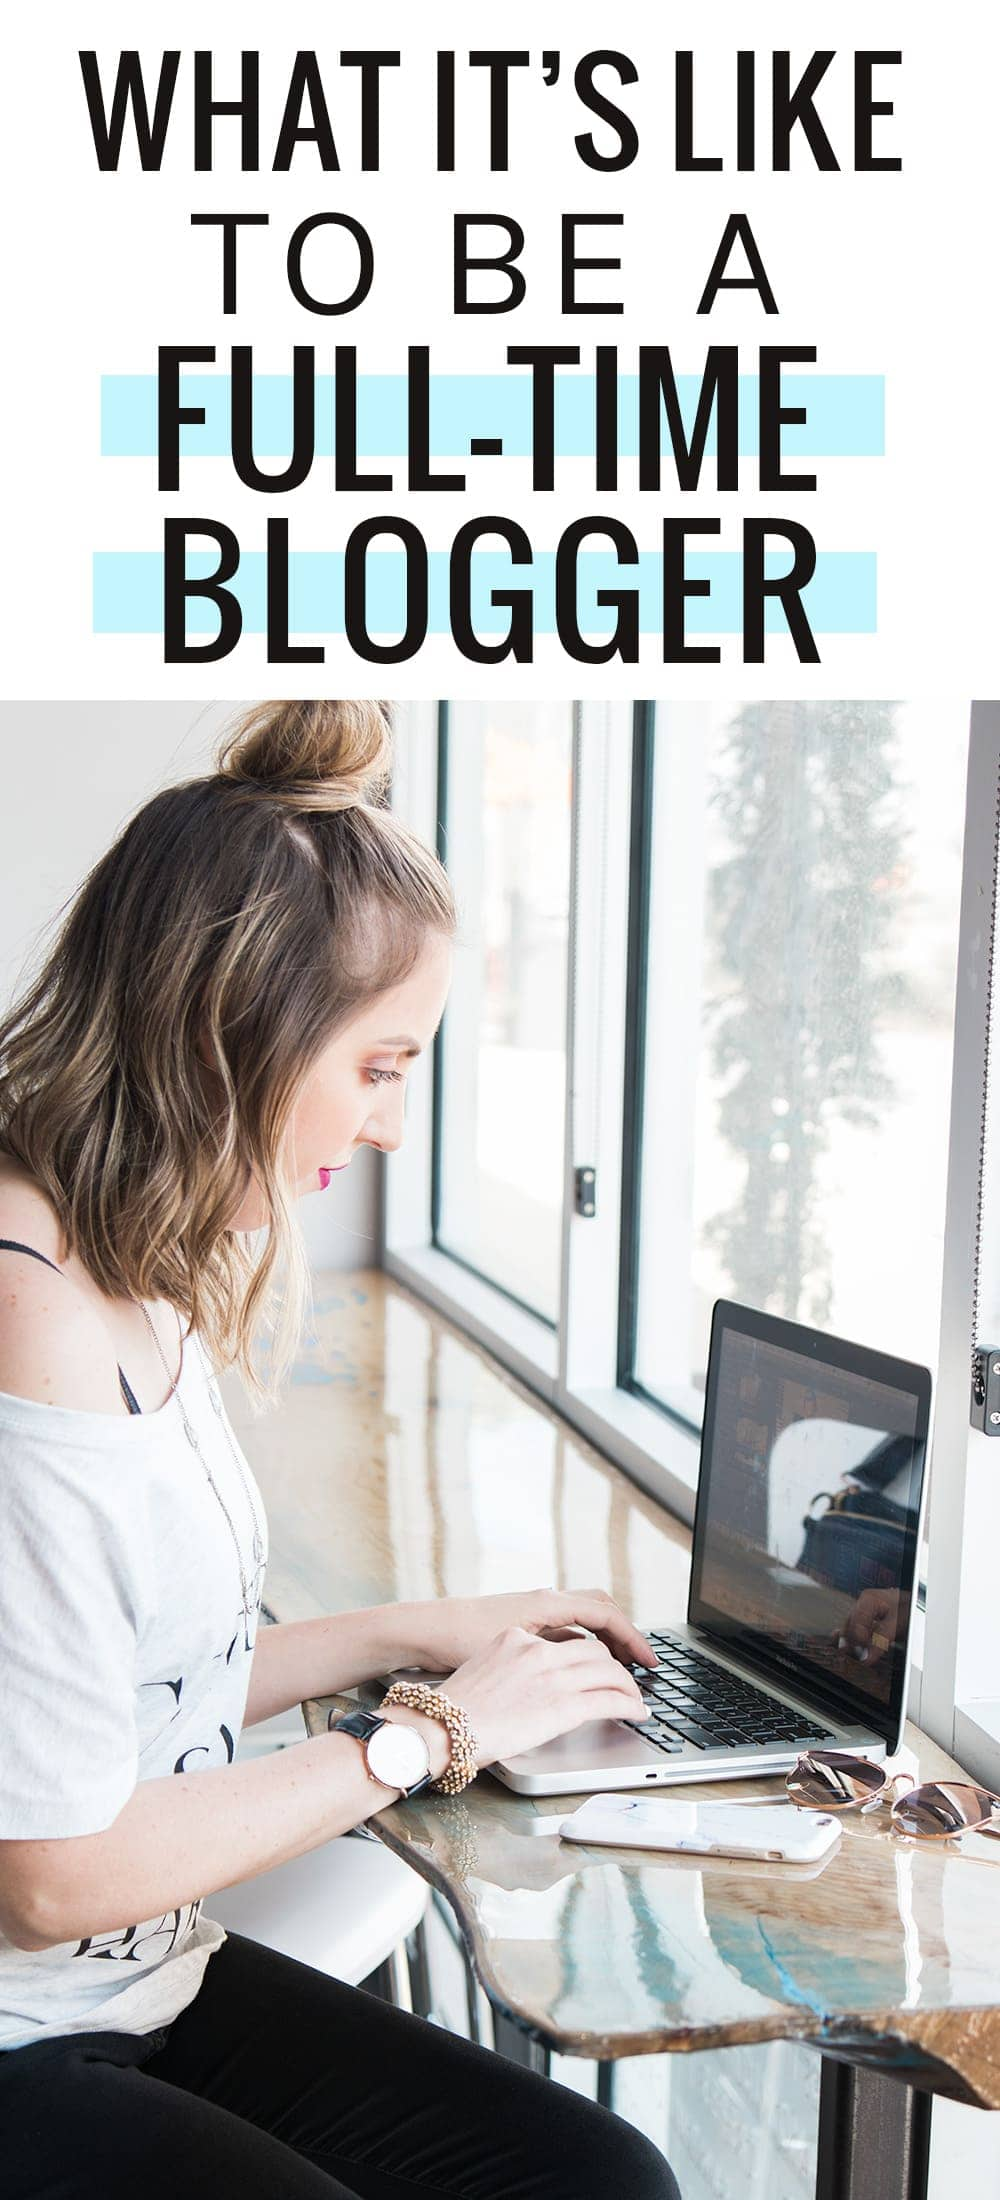 Meg O. just became a full-time blogger, and shares with us what her days are like. What is it like to be a full-time blogger? Click through to read more! #blogtips #blogger #blogging #bloggingtips